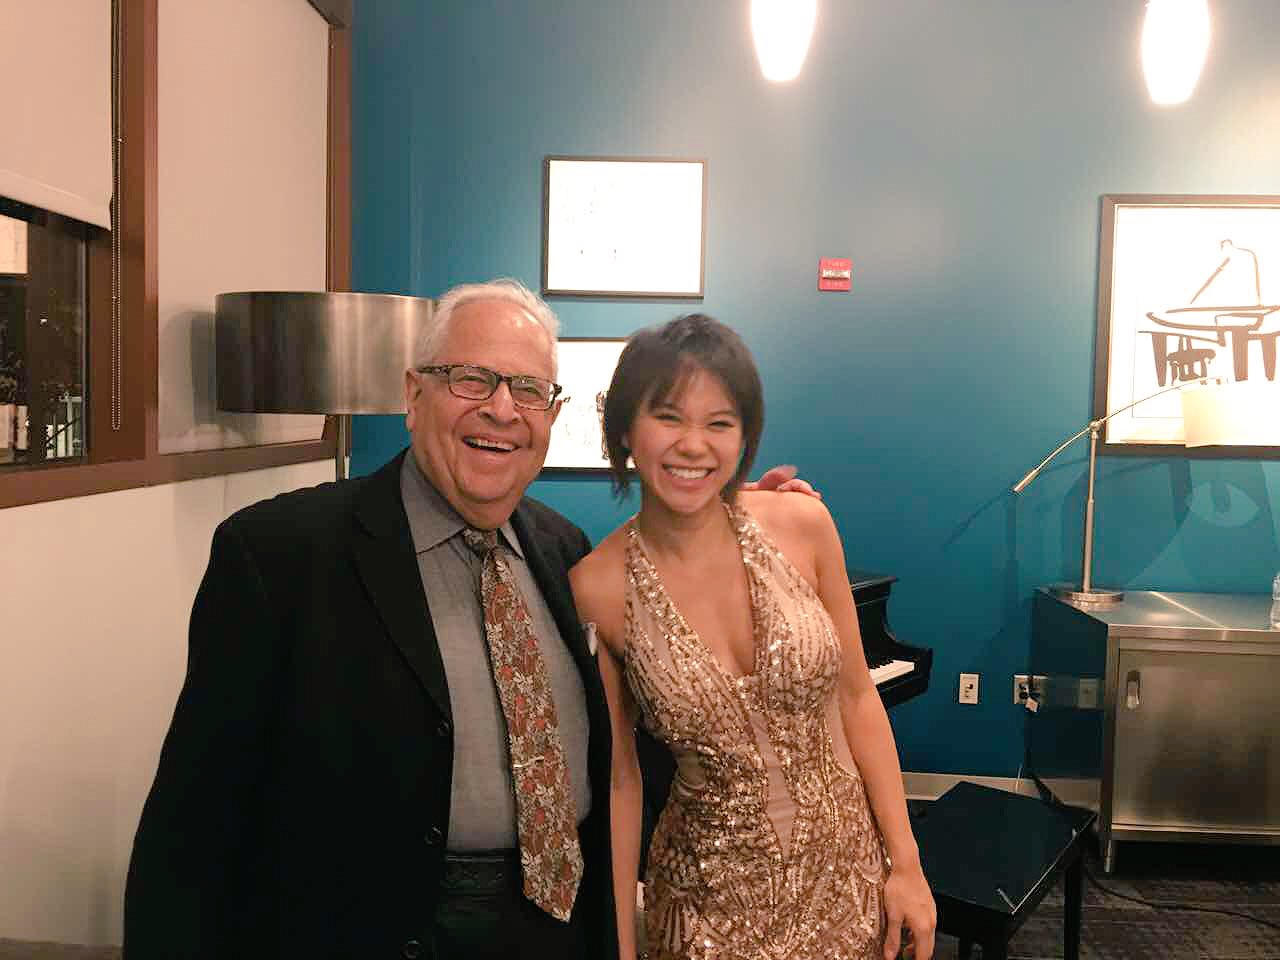 Reloaded twaddle – RT @YujaWang: To my beloved teacher Gary Graffman! I want to live like you, once...